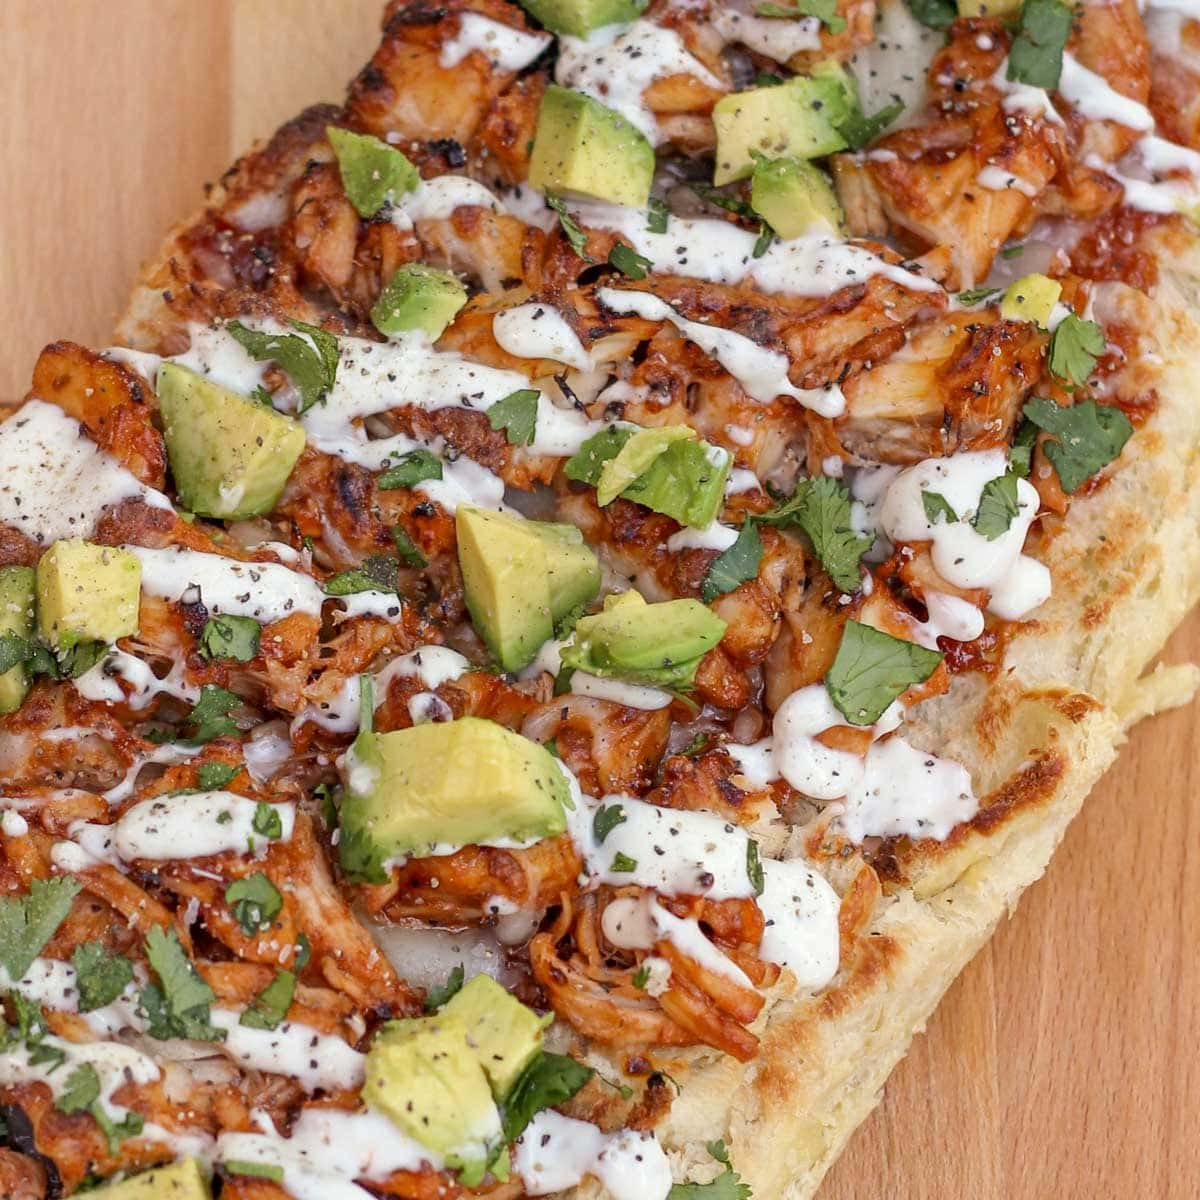 barbecue chicken french bread on a cutting board